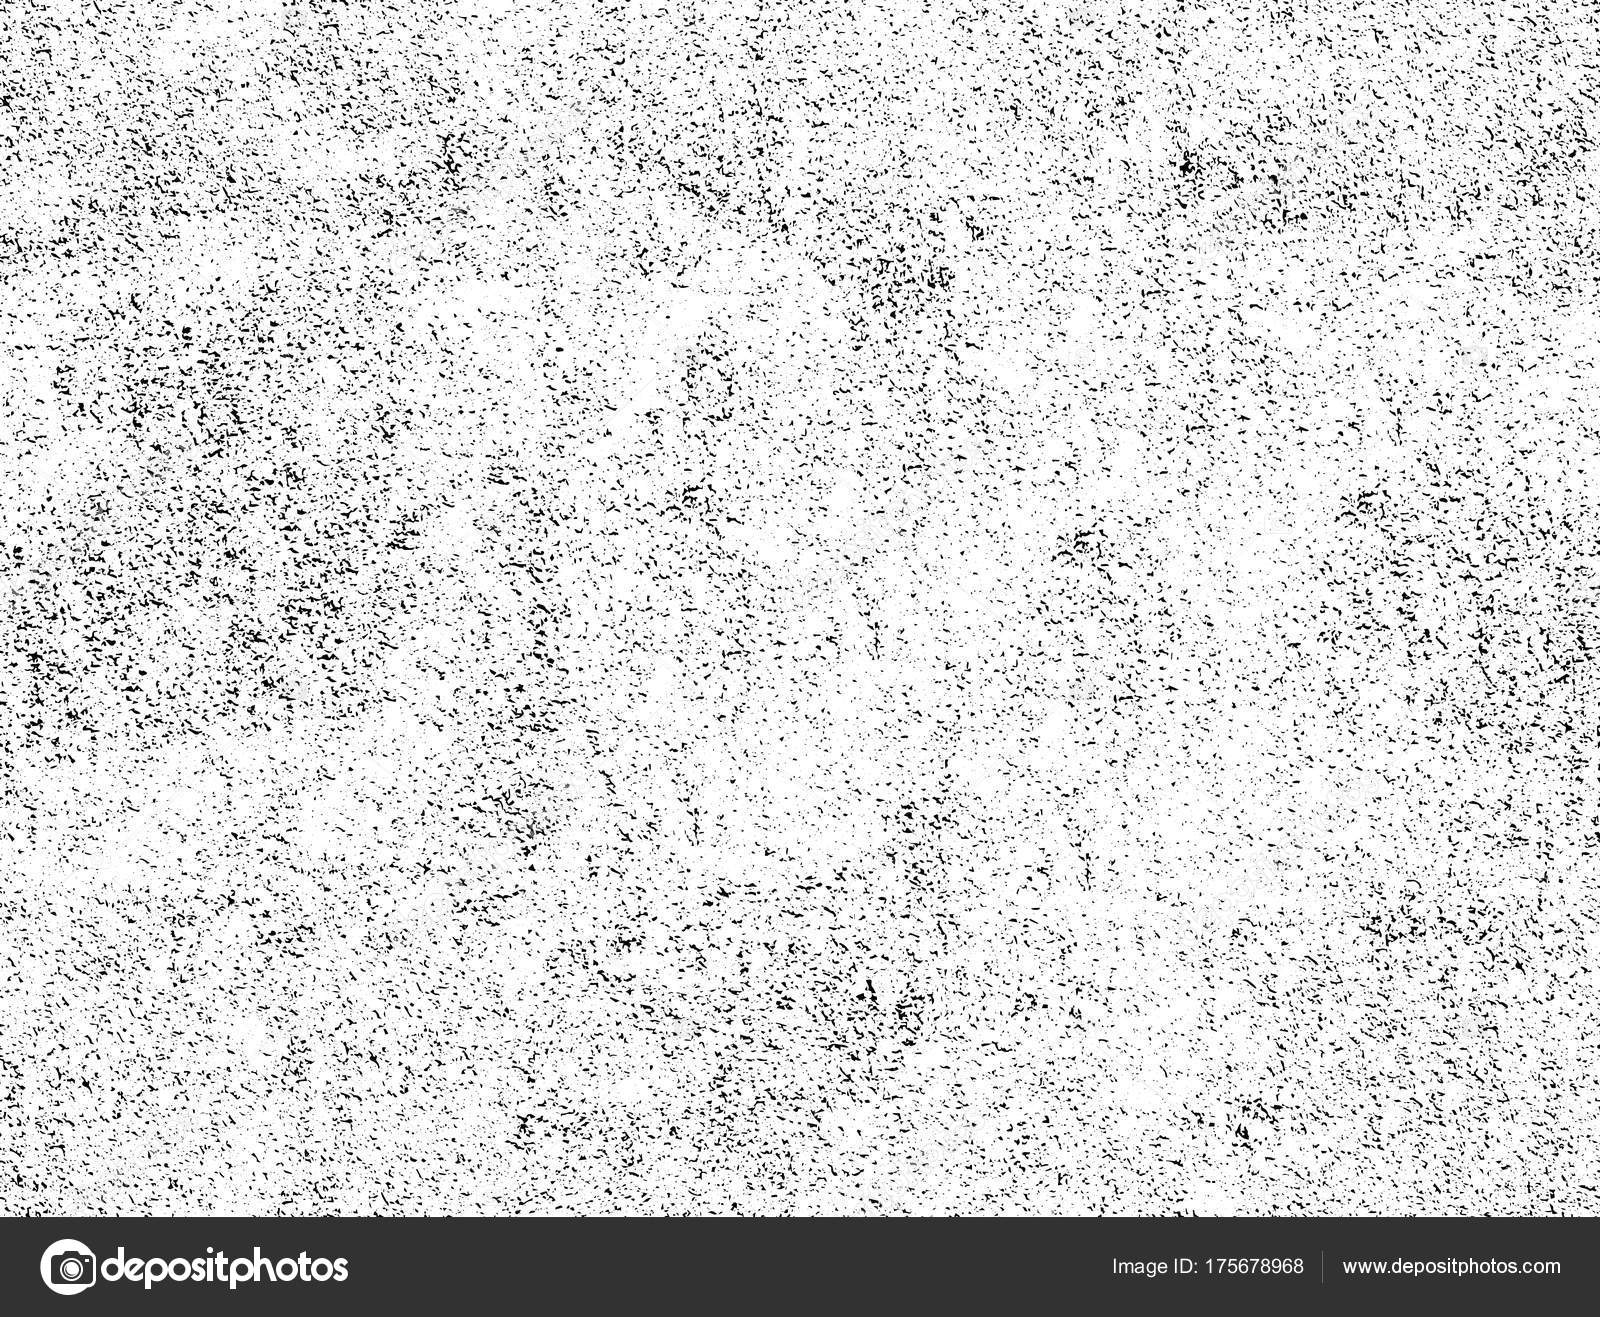 Grunge Background Texture. Abstract Seamless Noise. Black And White ...